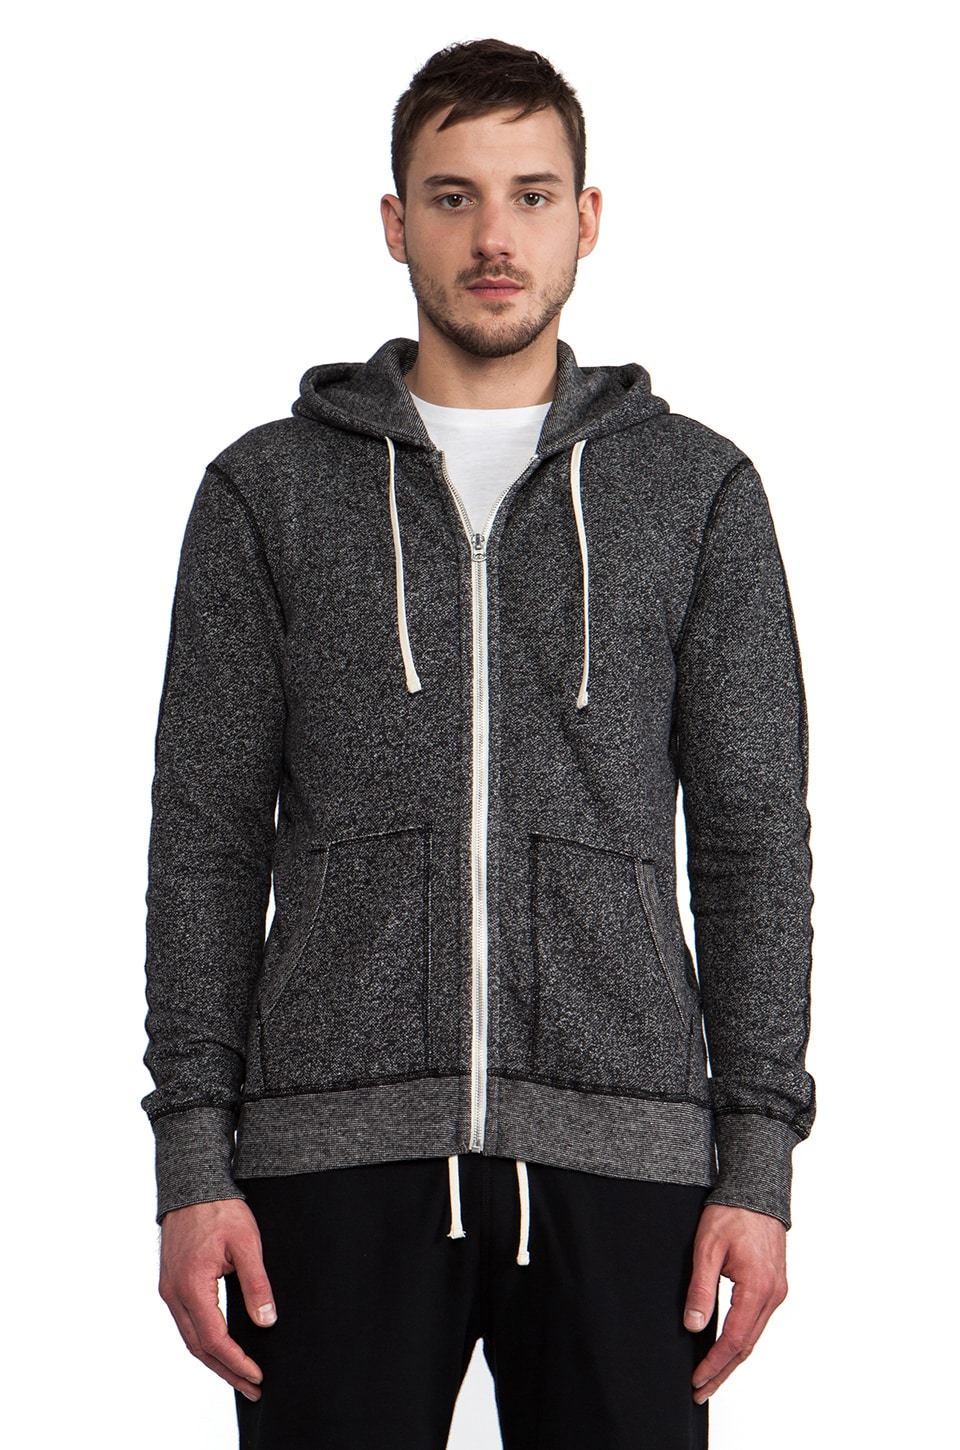 Reigning Champ Full-Zip Hoodie in Black & Natural